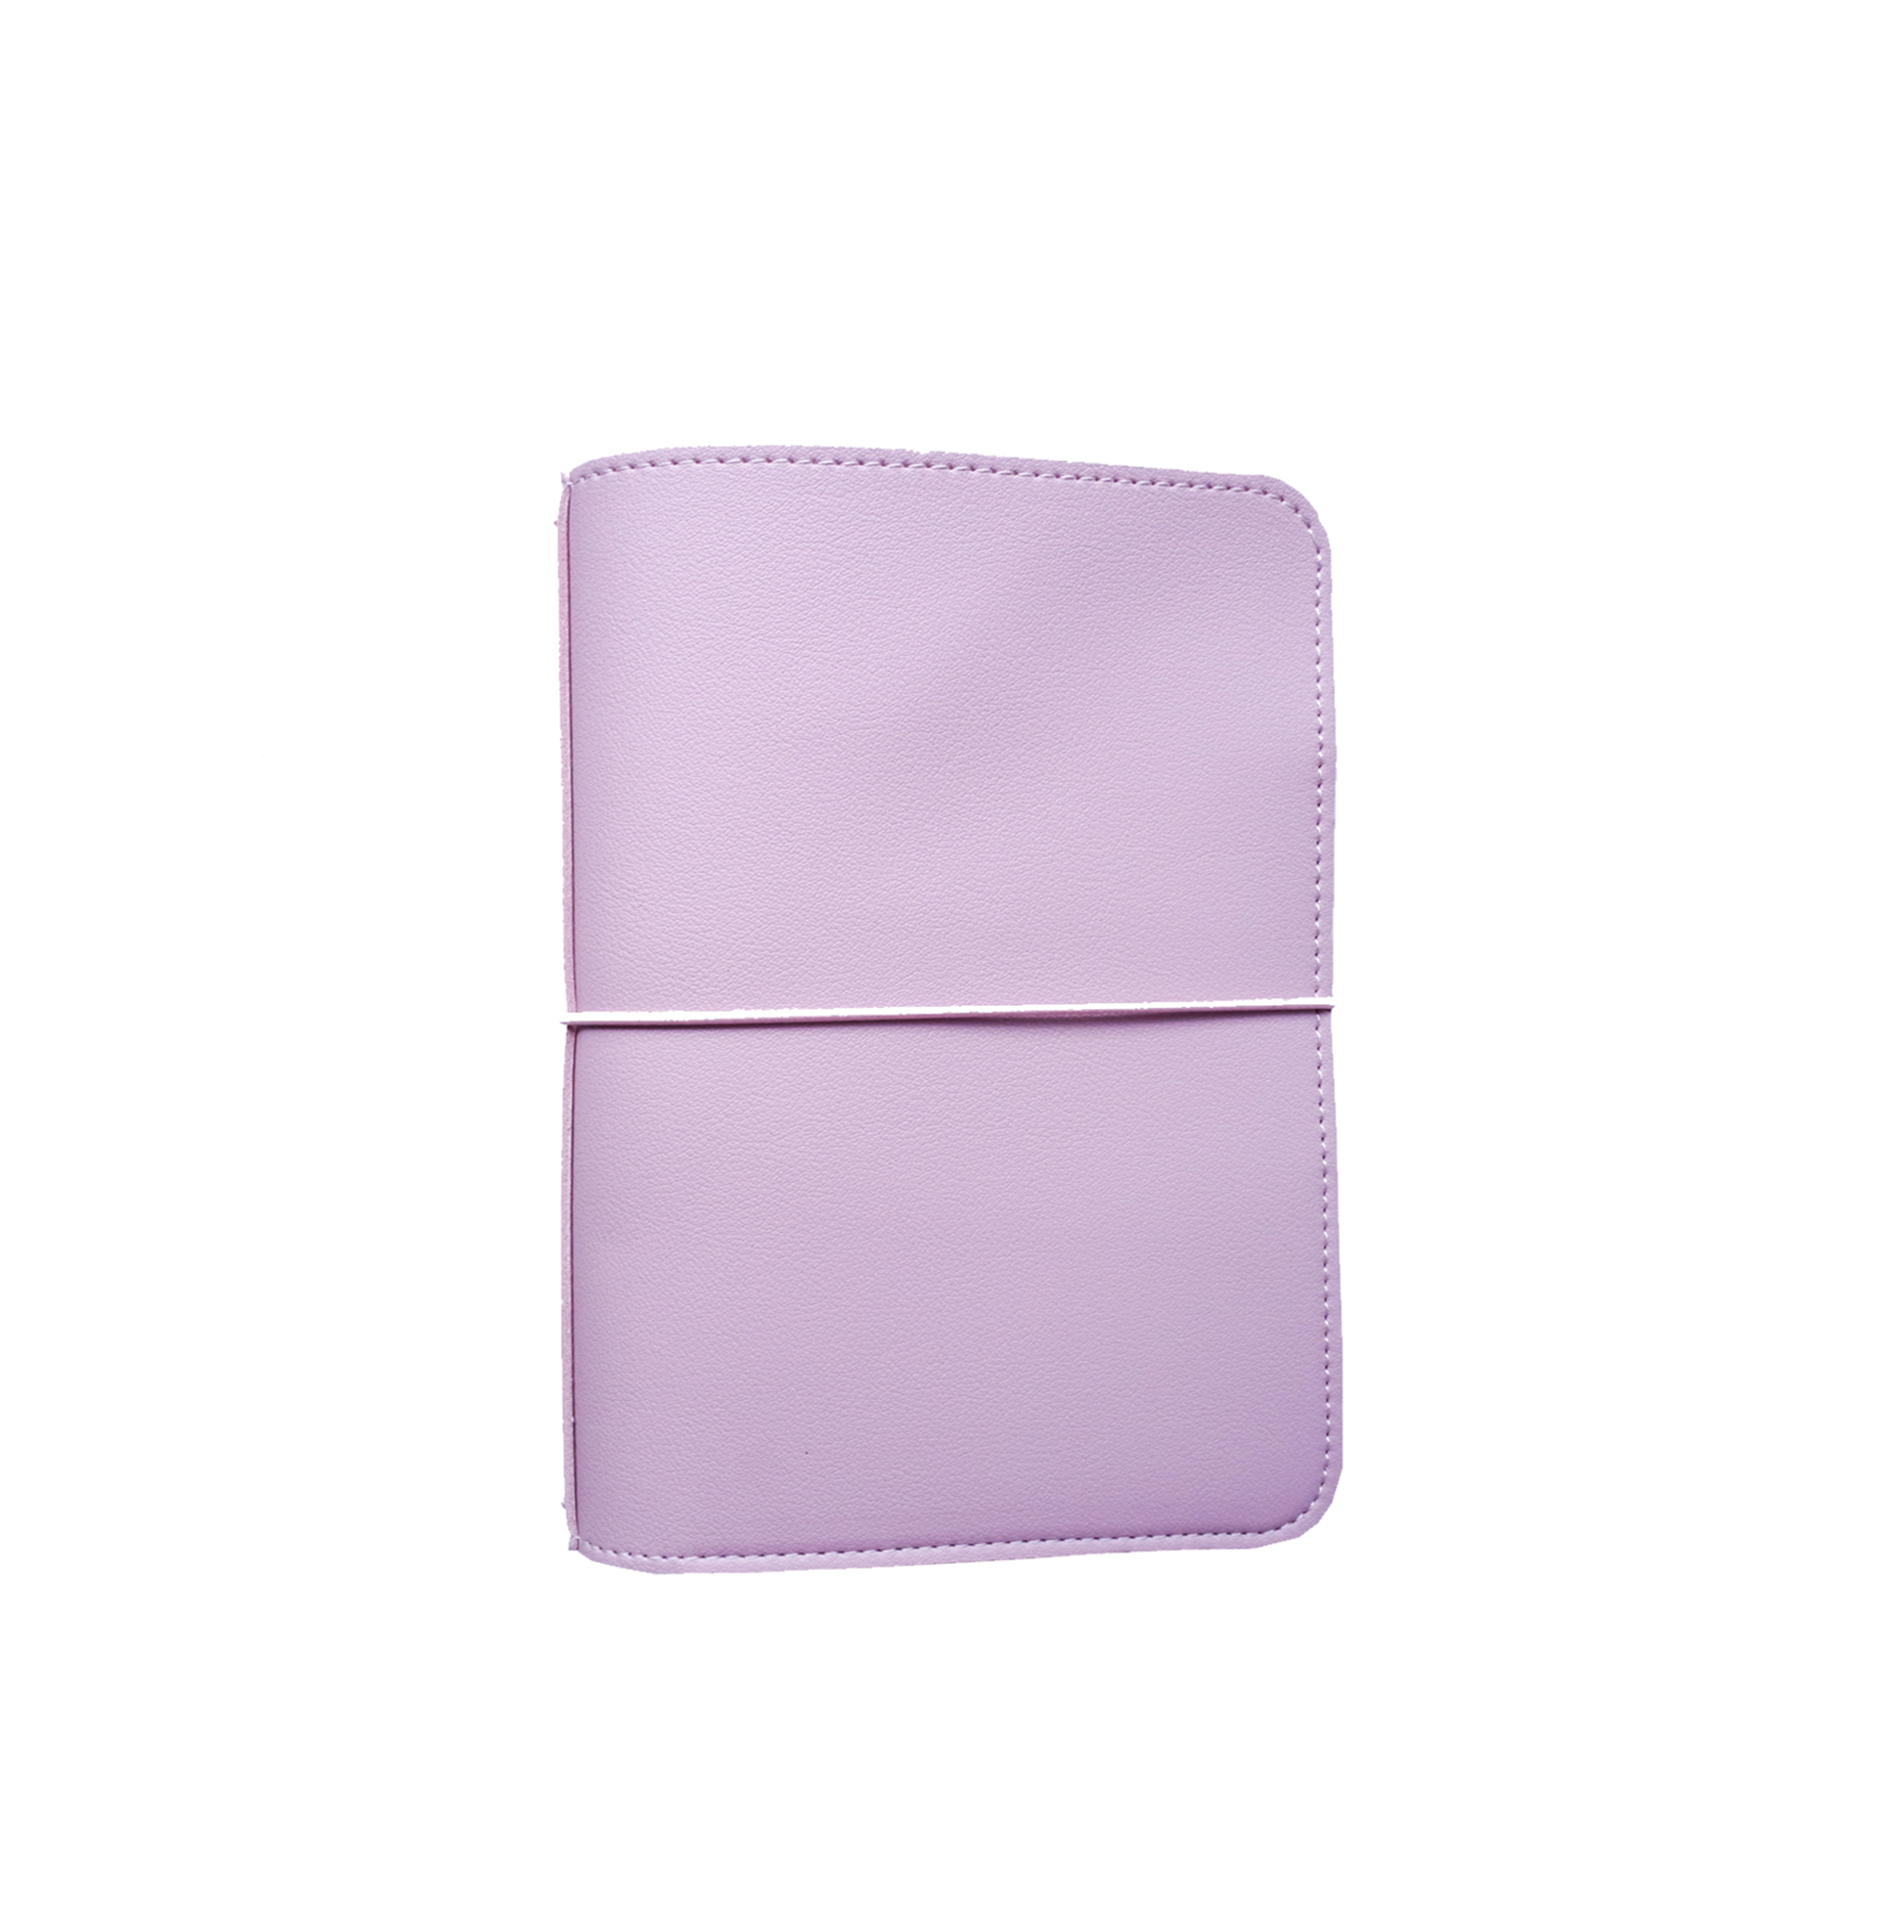 Perfect Fit B6 Travelers Notebook - Lilac Mist